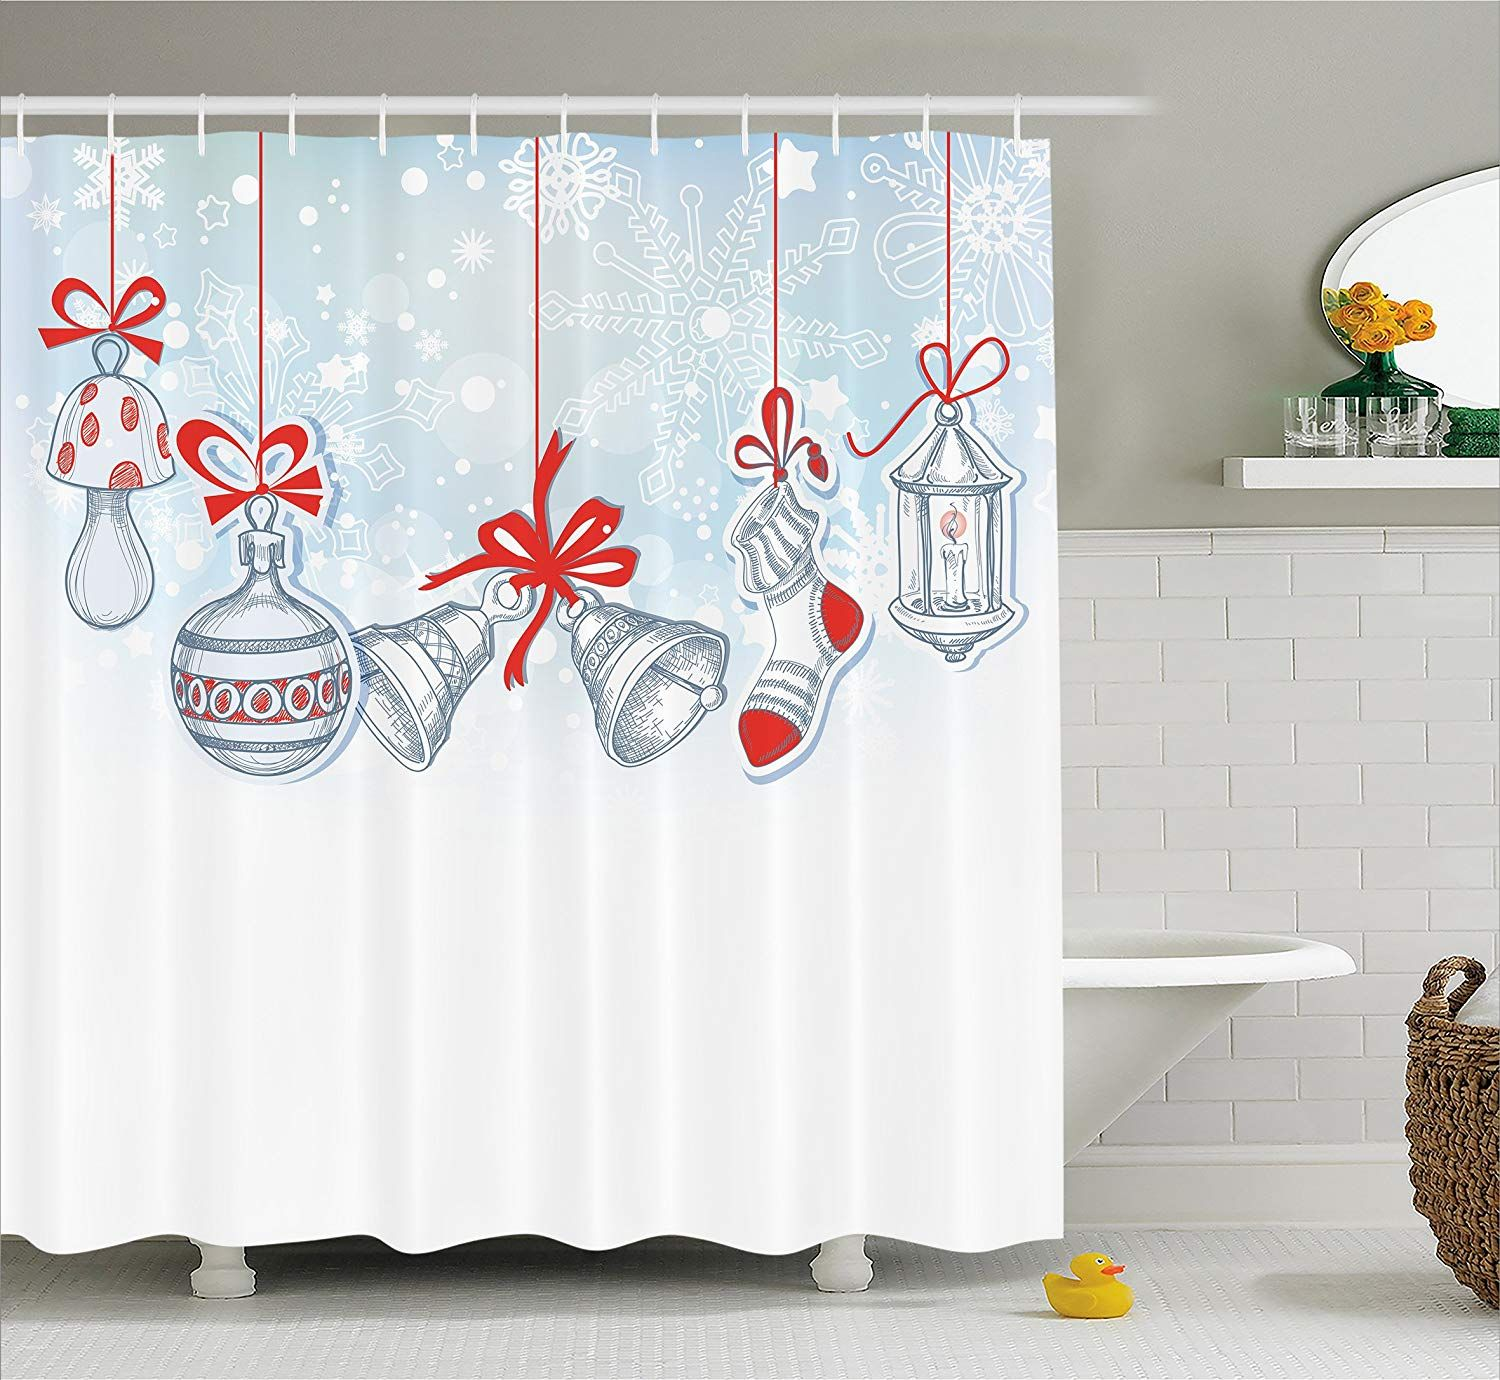 Amazon Ambesonne Christmas Shower Curtain Retro Decorations Vintage Style Famous Xmas Stockings For Toys And Candy Cane Bells Snowflake Graphic